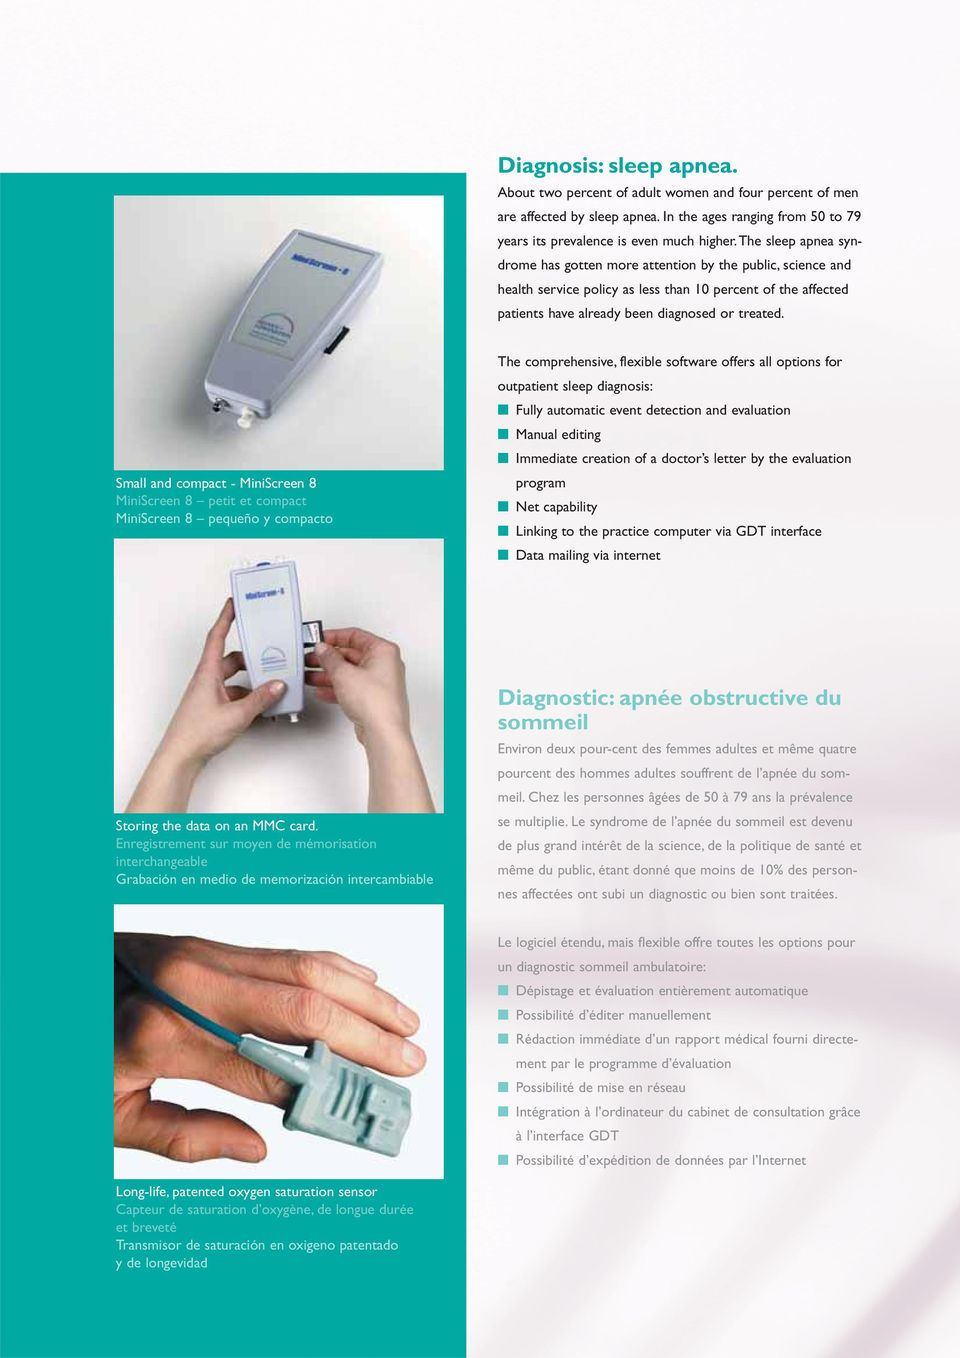 Small and compact - MiniScreen 8 MiniScreen 8 petit et compact MiniScreen 8 pequeño y compacto The comprehensive, flexible software offers all options for outpatient sleep diagnosis: Fully automatic